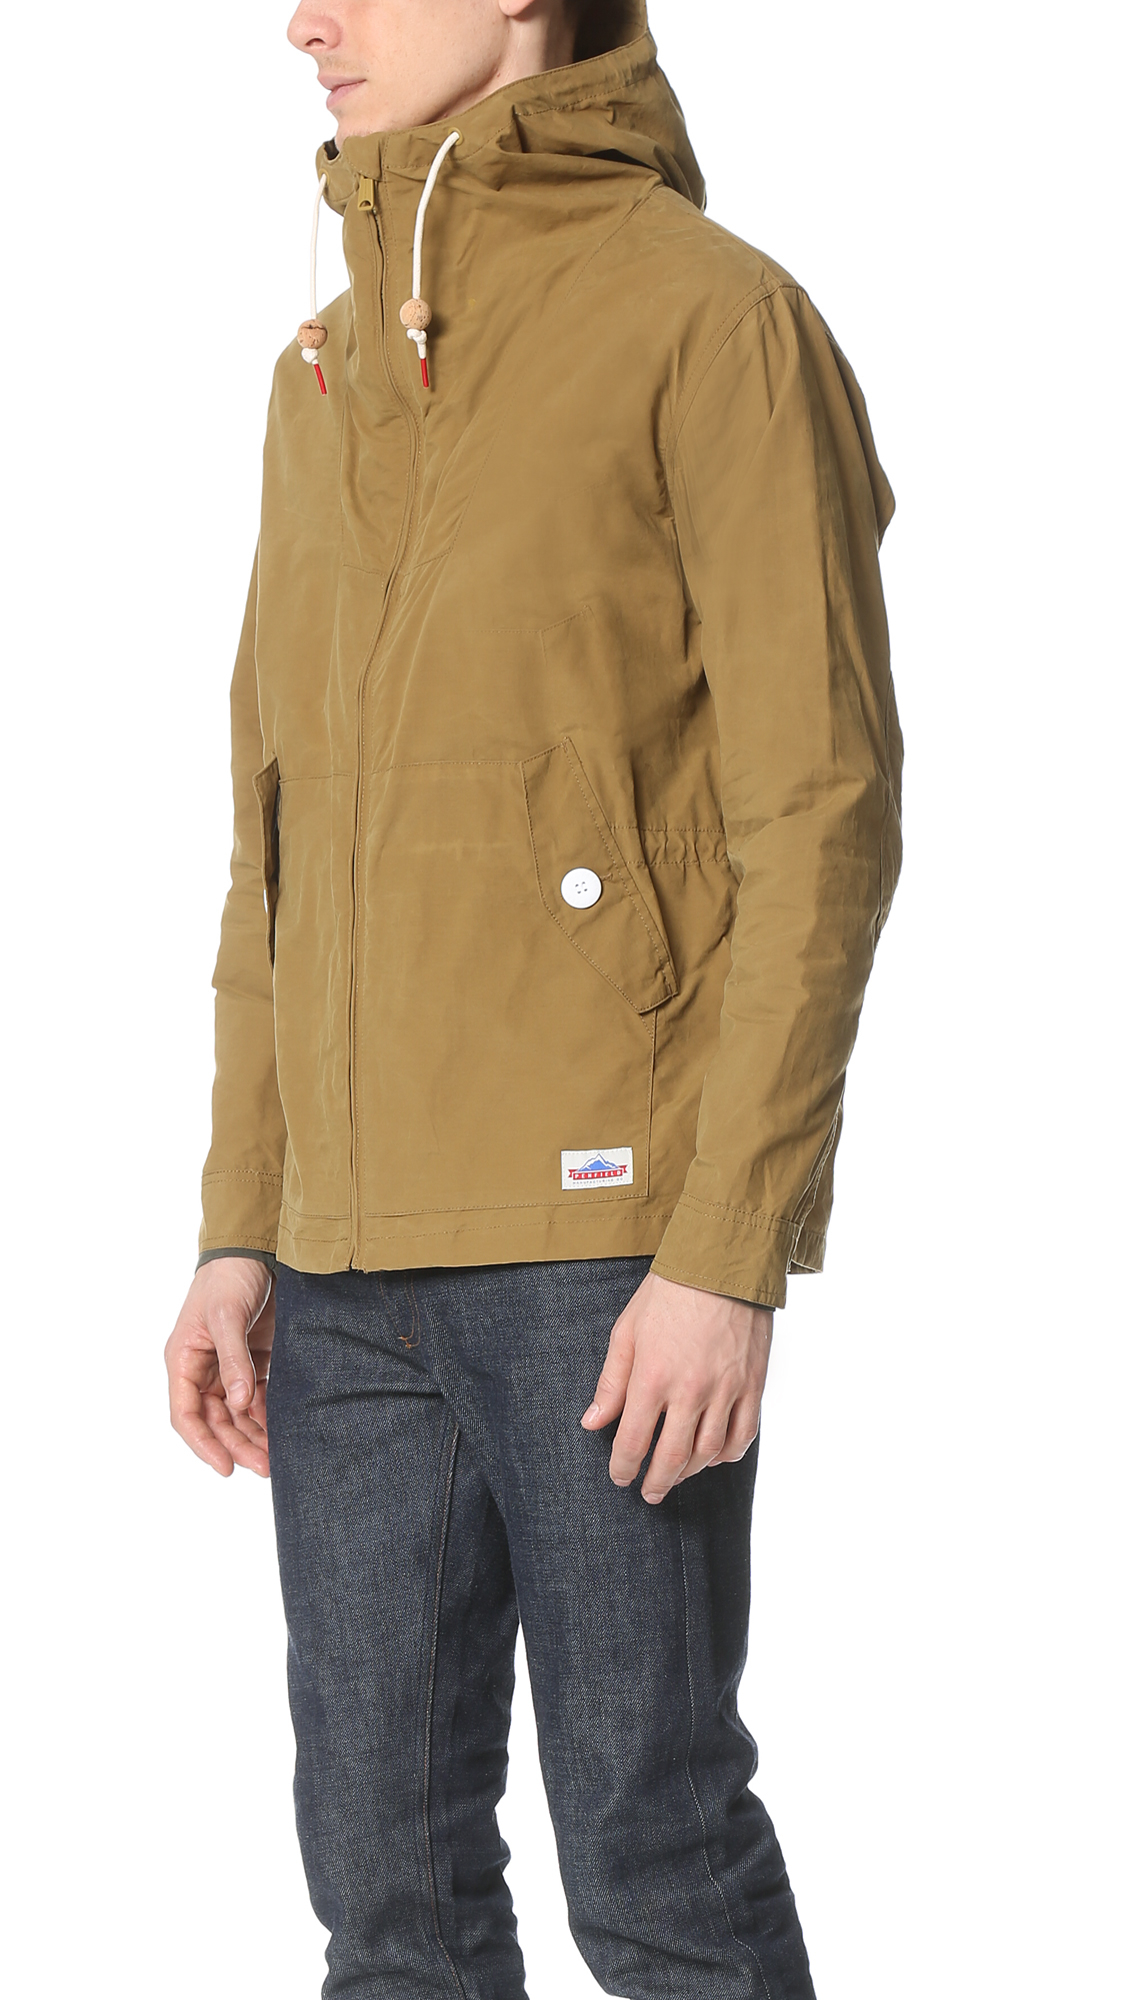 Tan Rain Jacket Fit Jacket